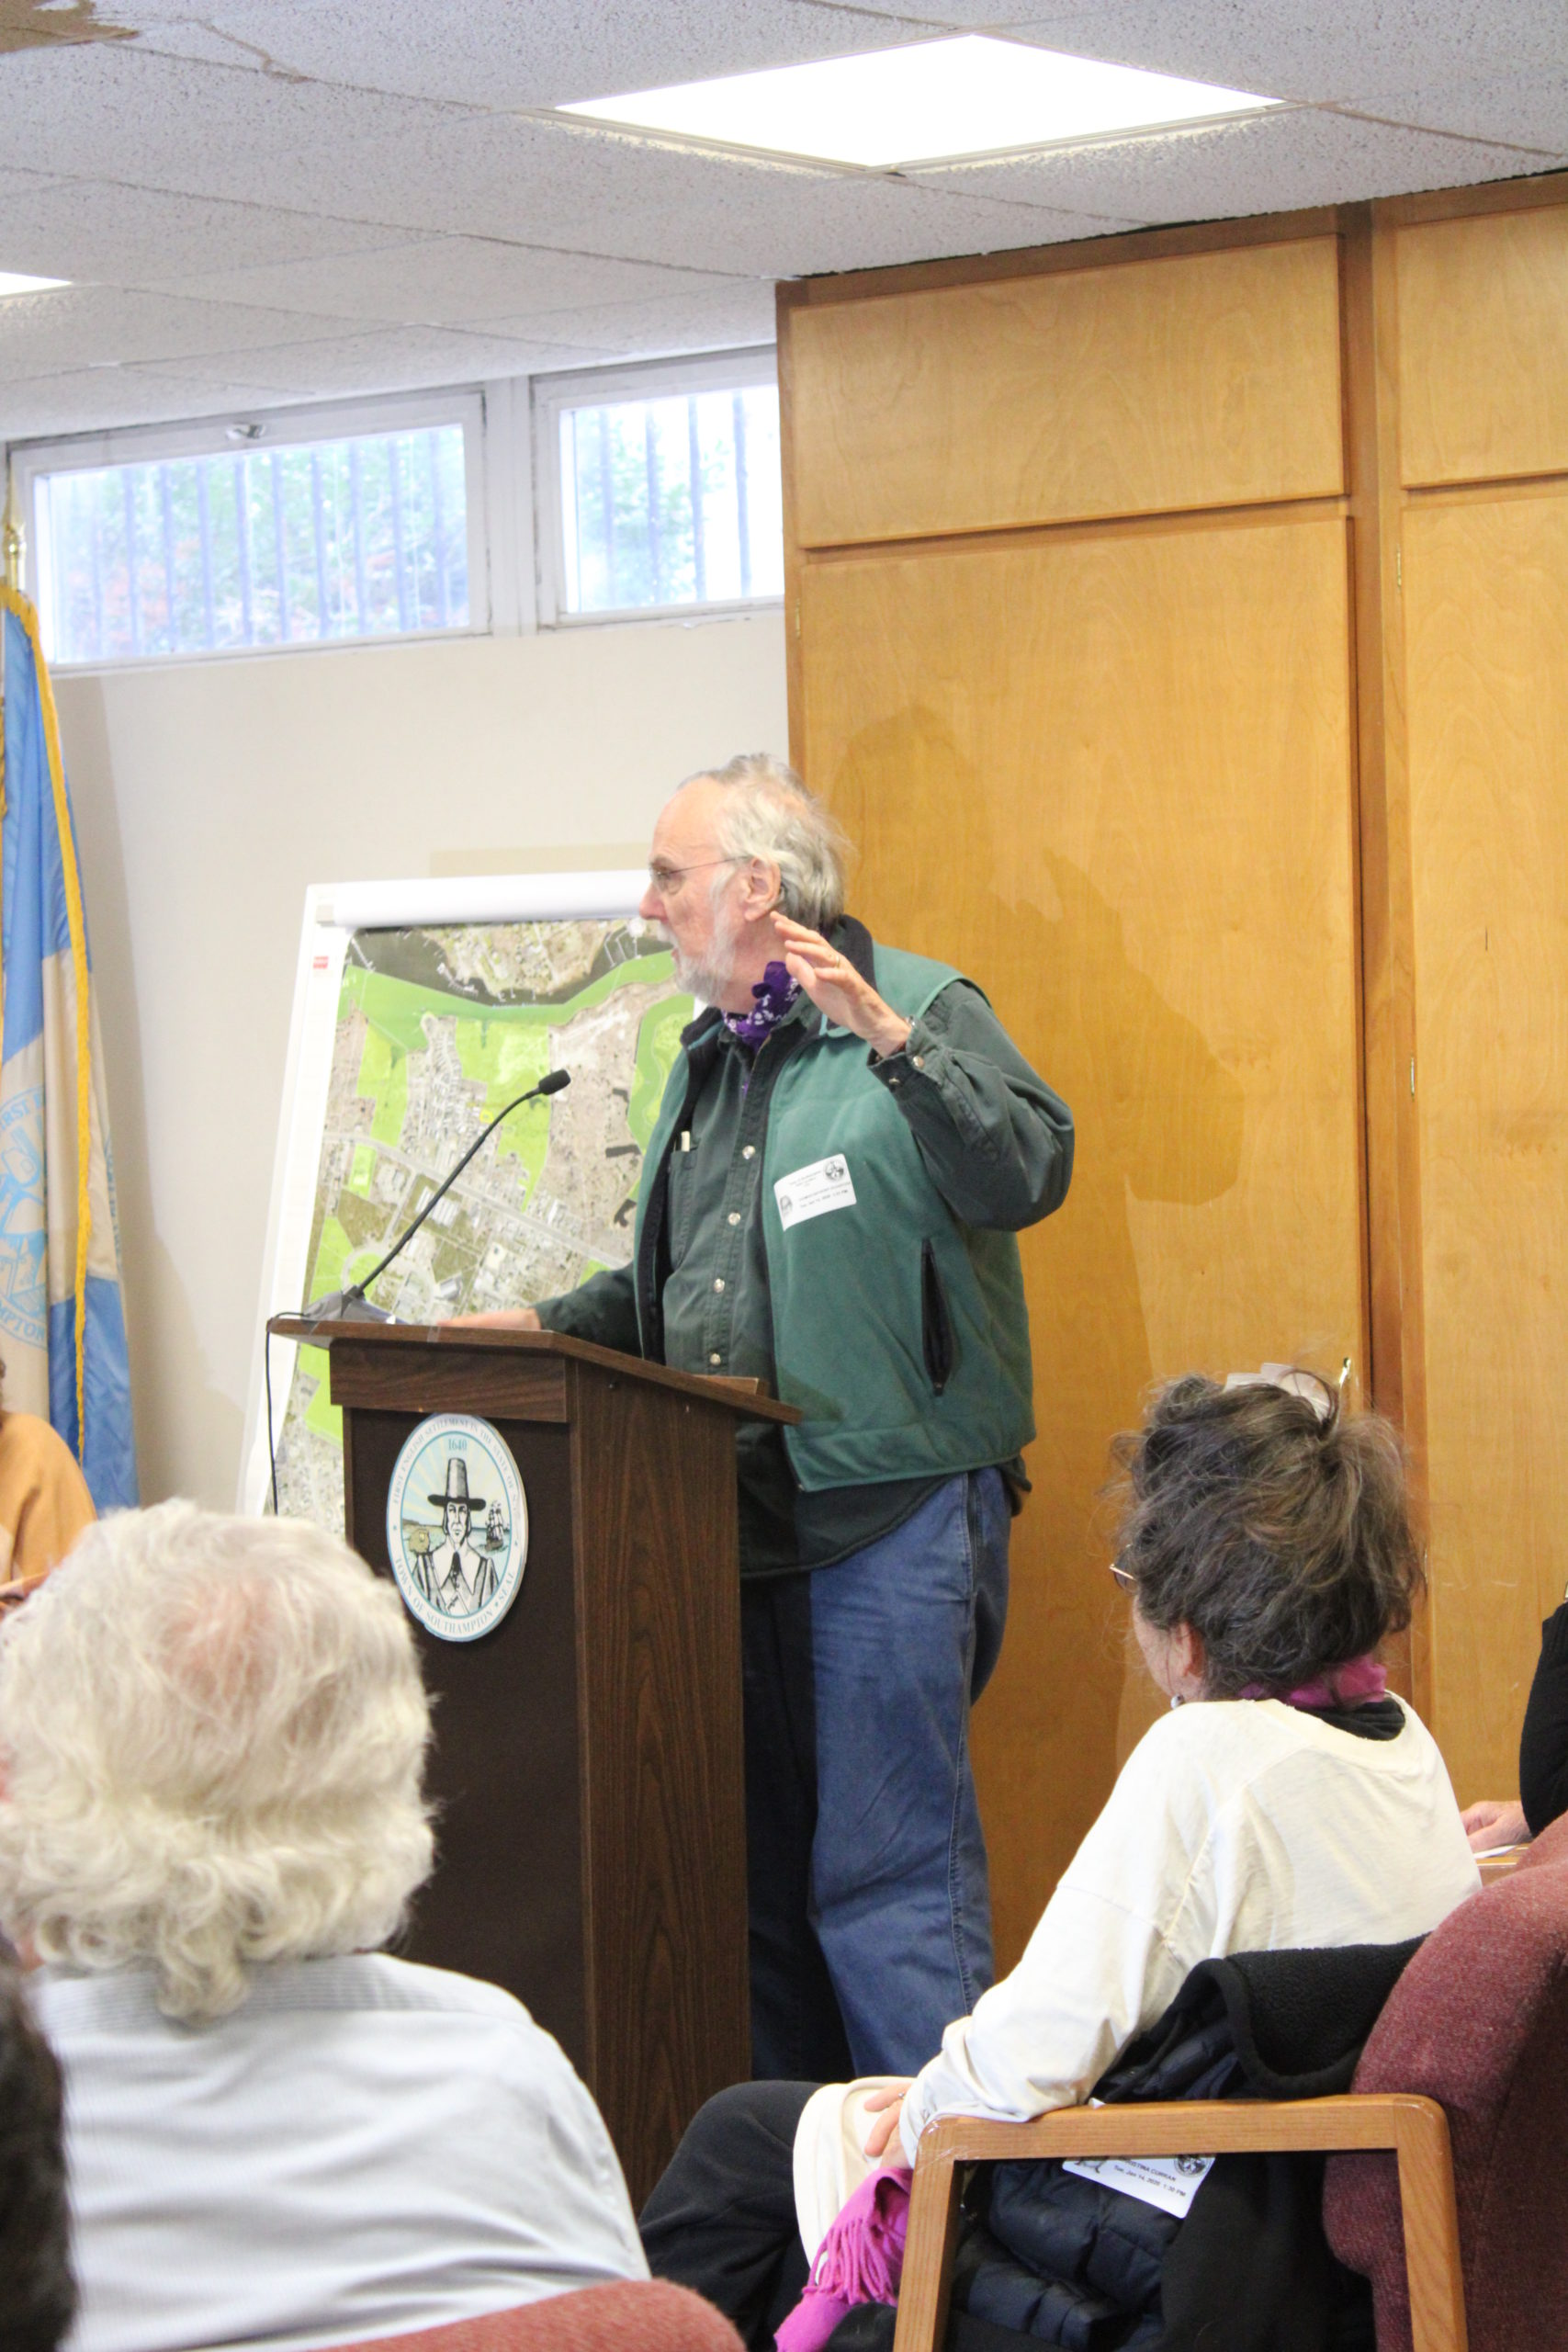 Thomas Oleszczuk of Noyac spoke at the town board meeting on Tuesday regarding the home being built on Sugar Loaf, a sacred site for the Shinnecock Nation.